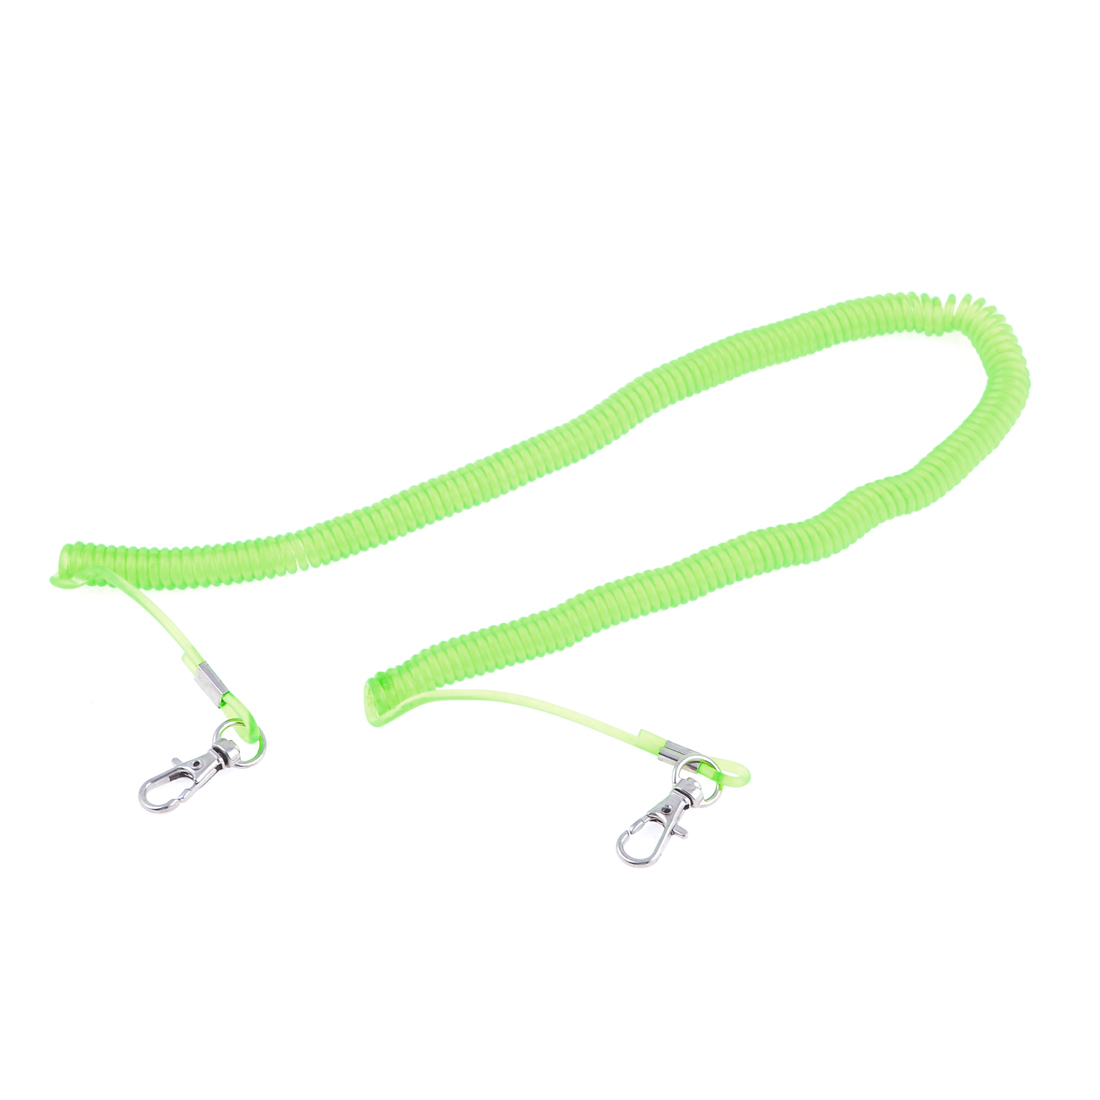 16.4Ft Retractable Stretchy Coiled Fishing Lanyard Rope String Light Green